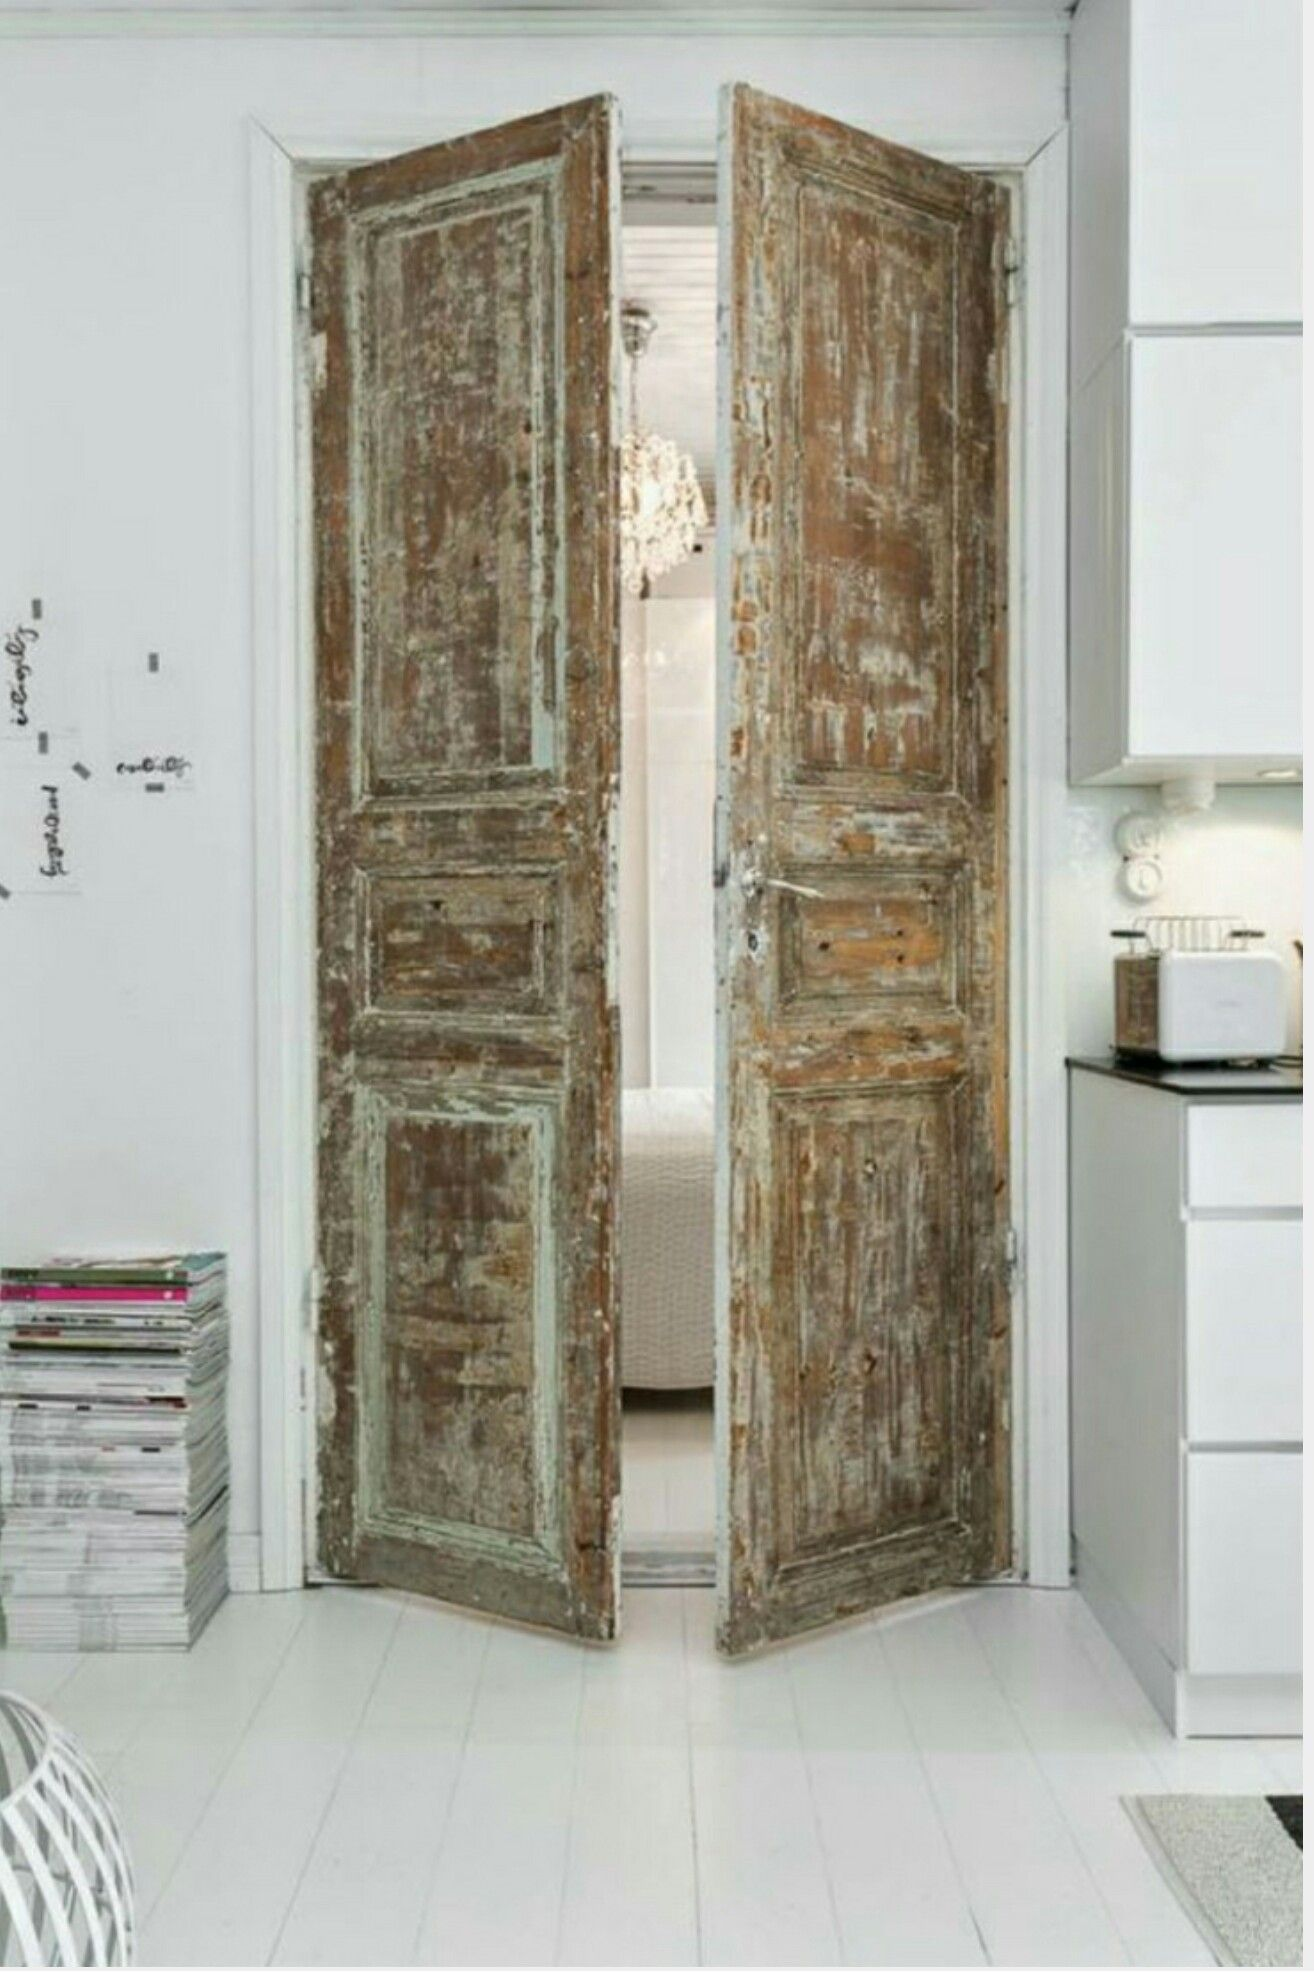 Antique Doors With Beautiful Patina Leading To Minimal White Kitchen